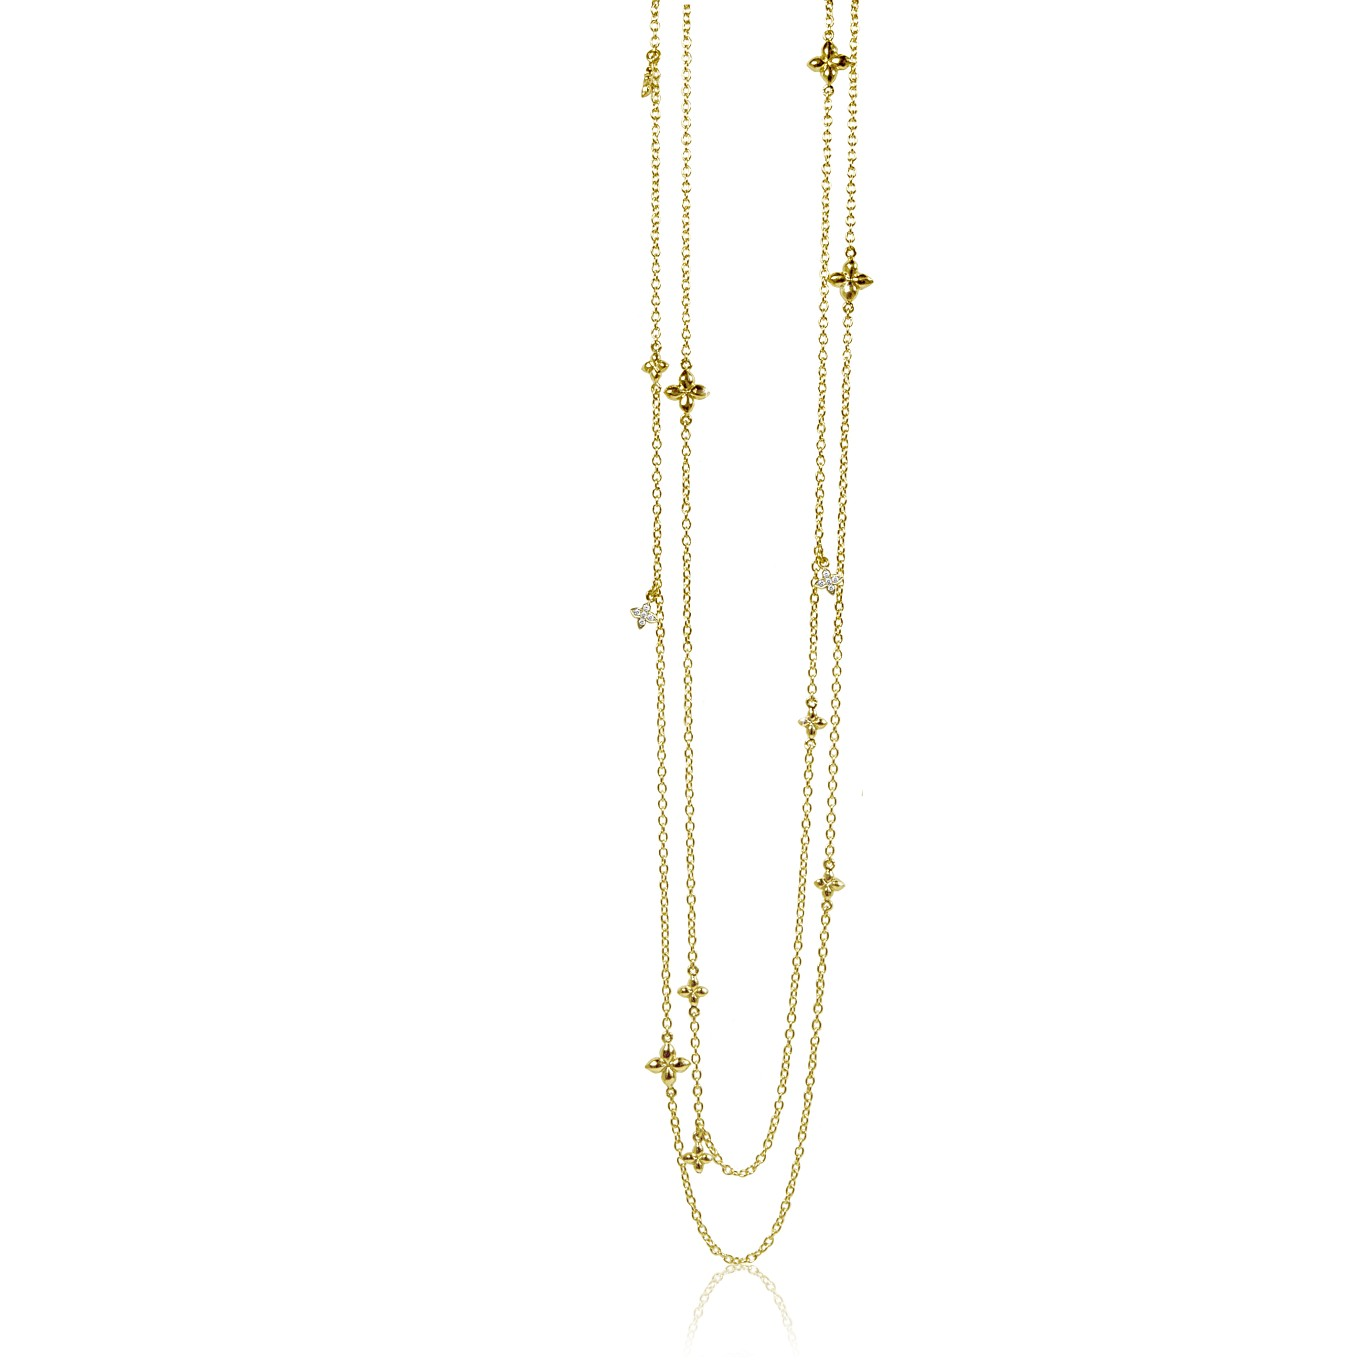 SEVILLA 32 INCH NECKLACE IN YELLOW GOLD & DIAMOND OR IN STERLING SILVER